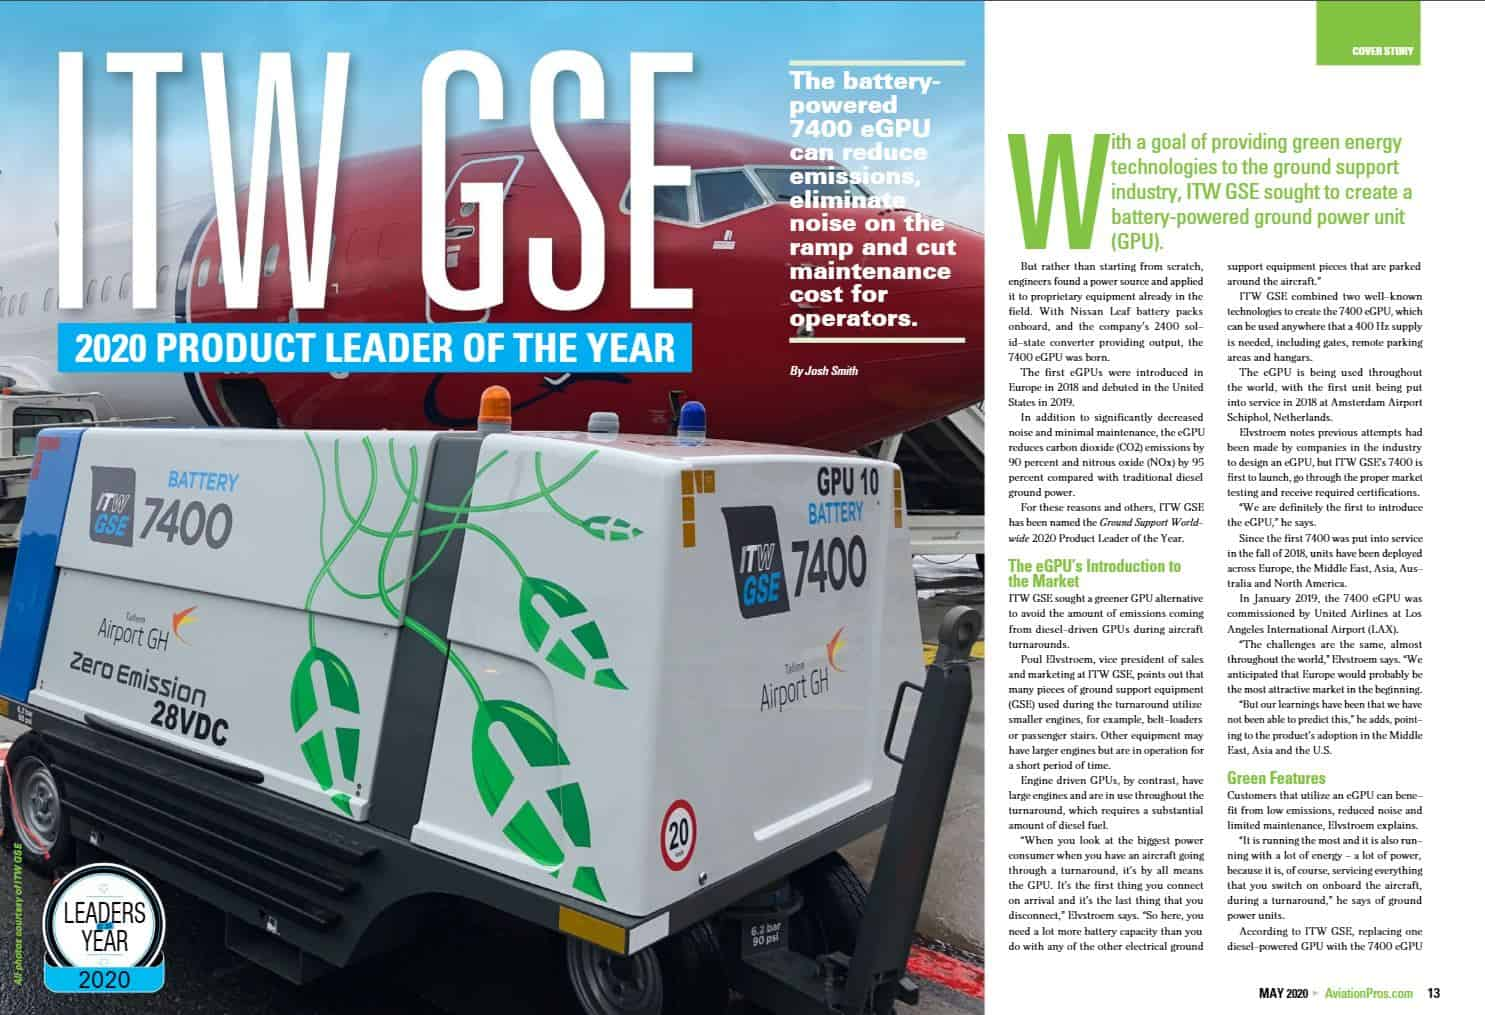 itw gse, itwgse, gsee, product leader of the year 2020, product leader, 7400 eGPU, battery driven gpu, ground power unit, ground support worldwide